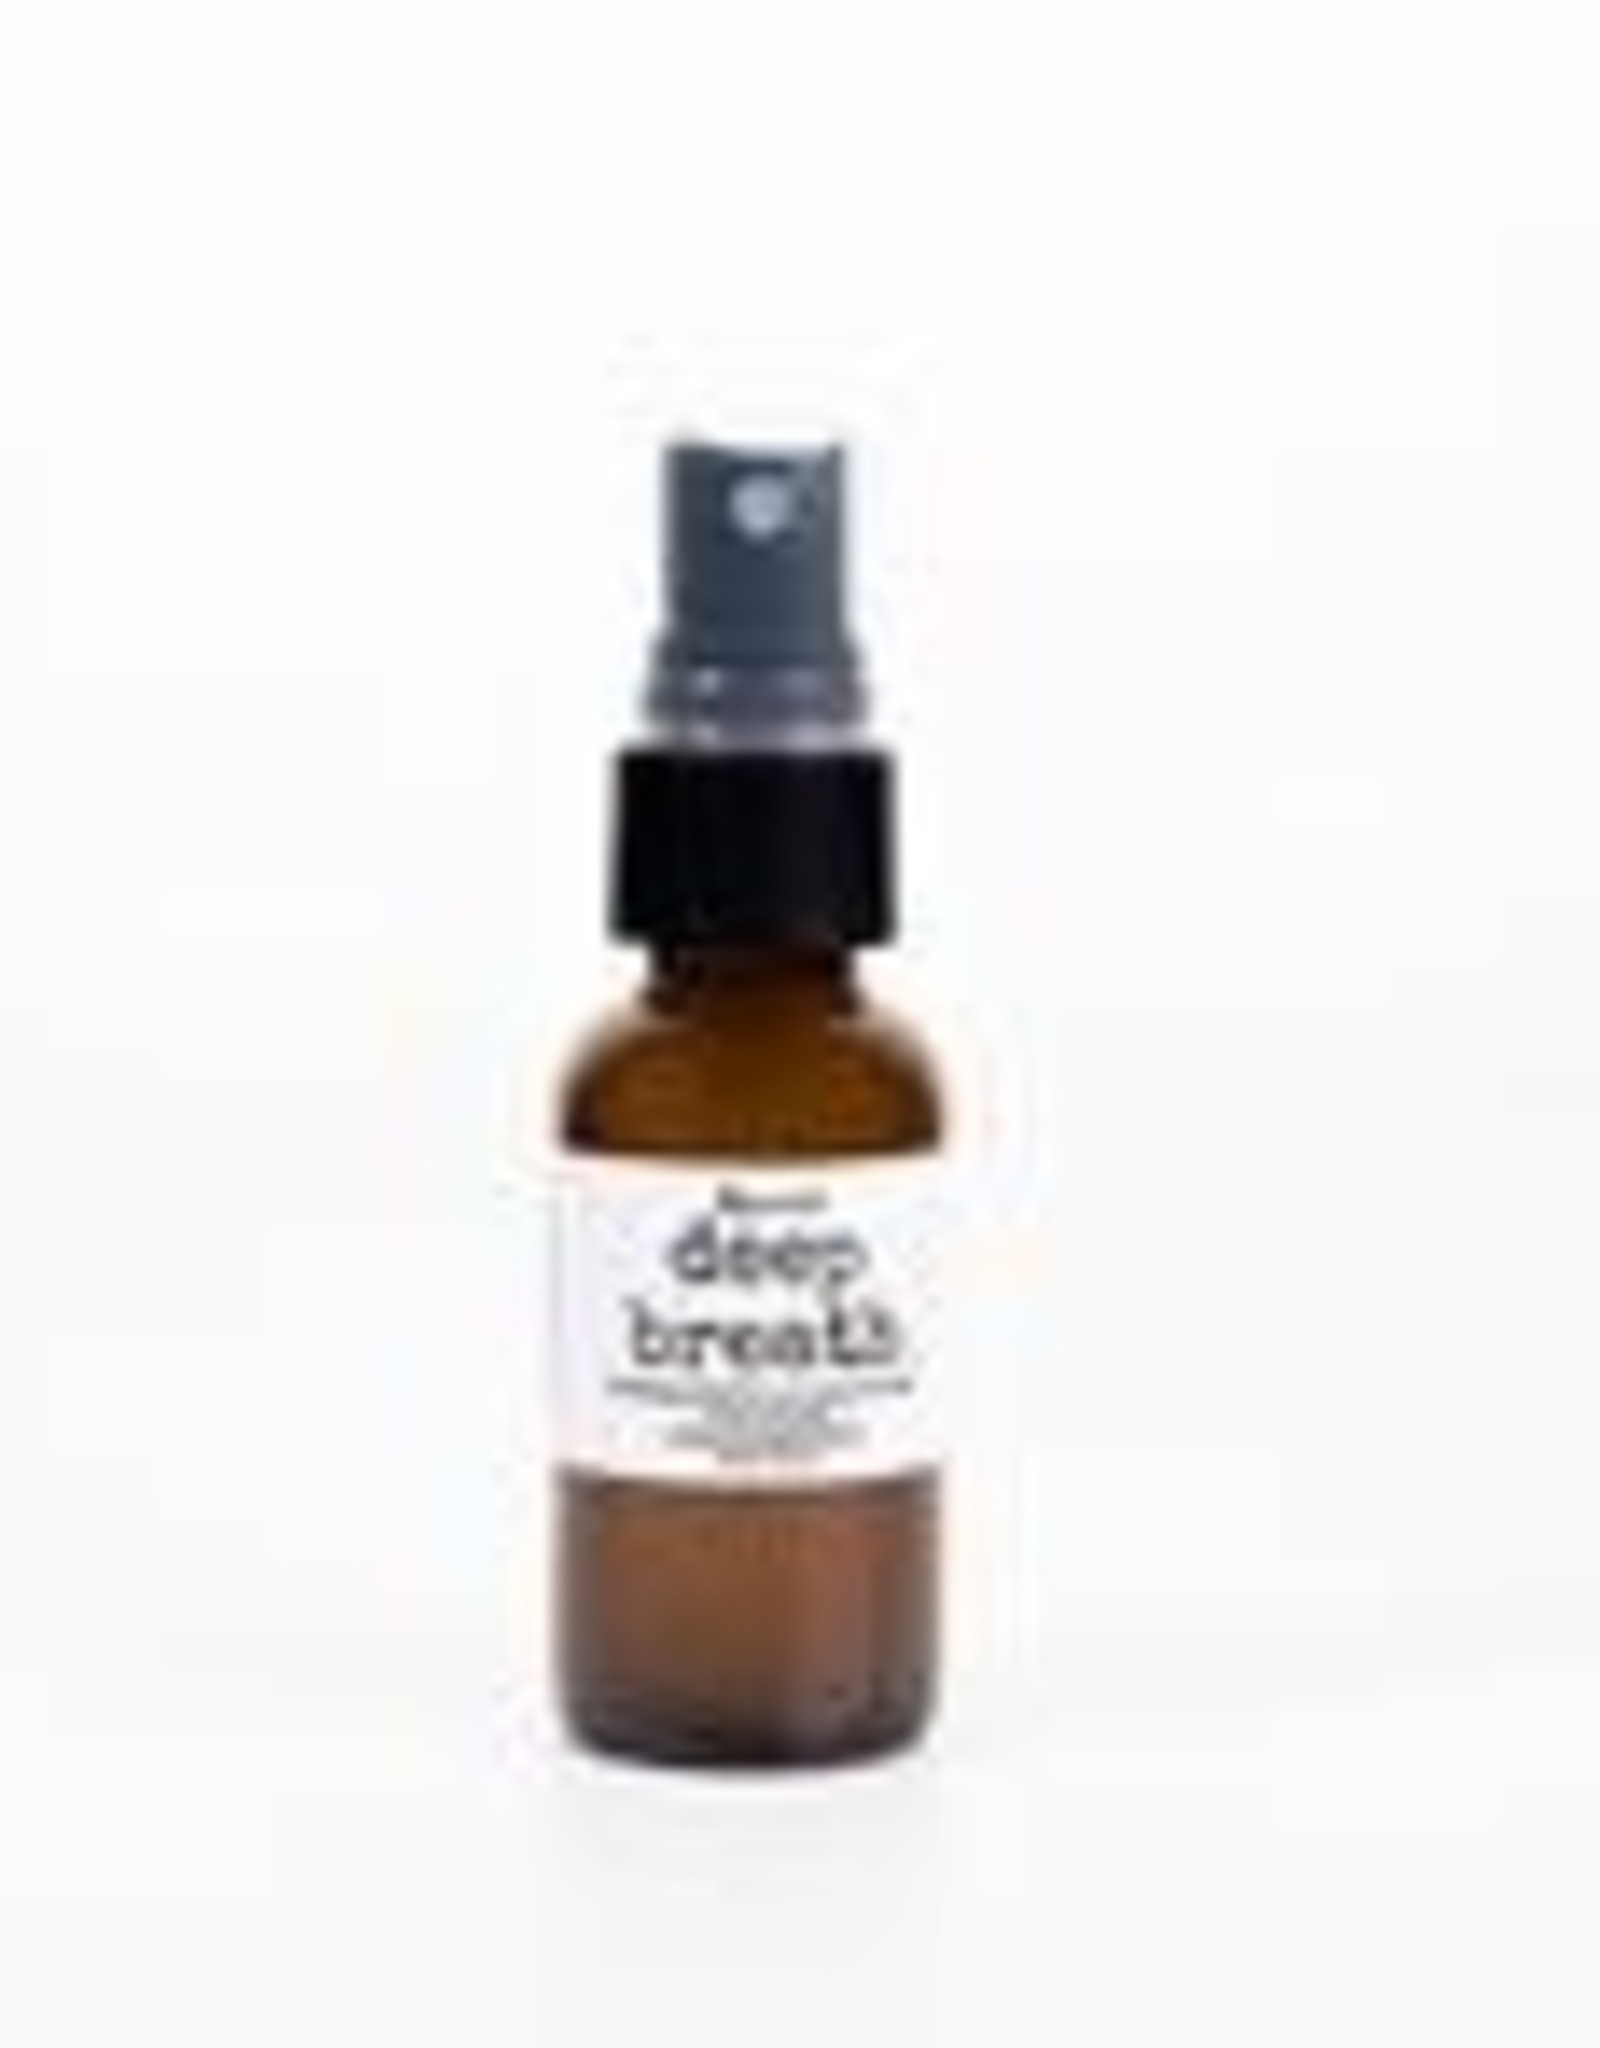 K'Pure Deep Breath 30ml